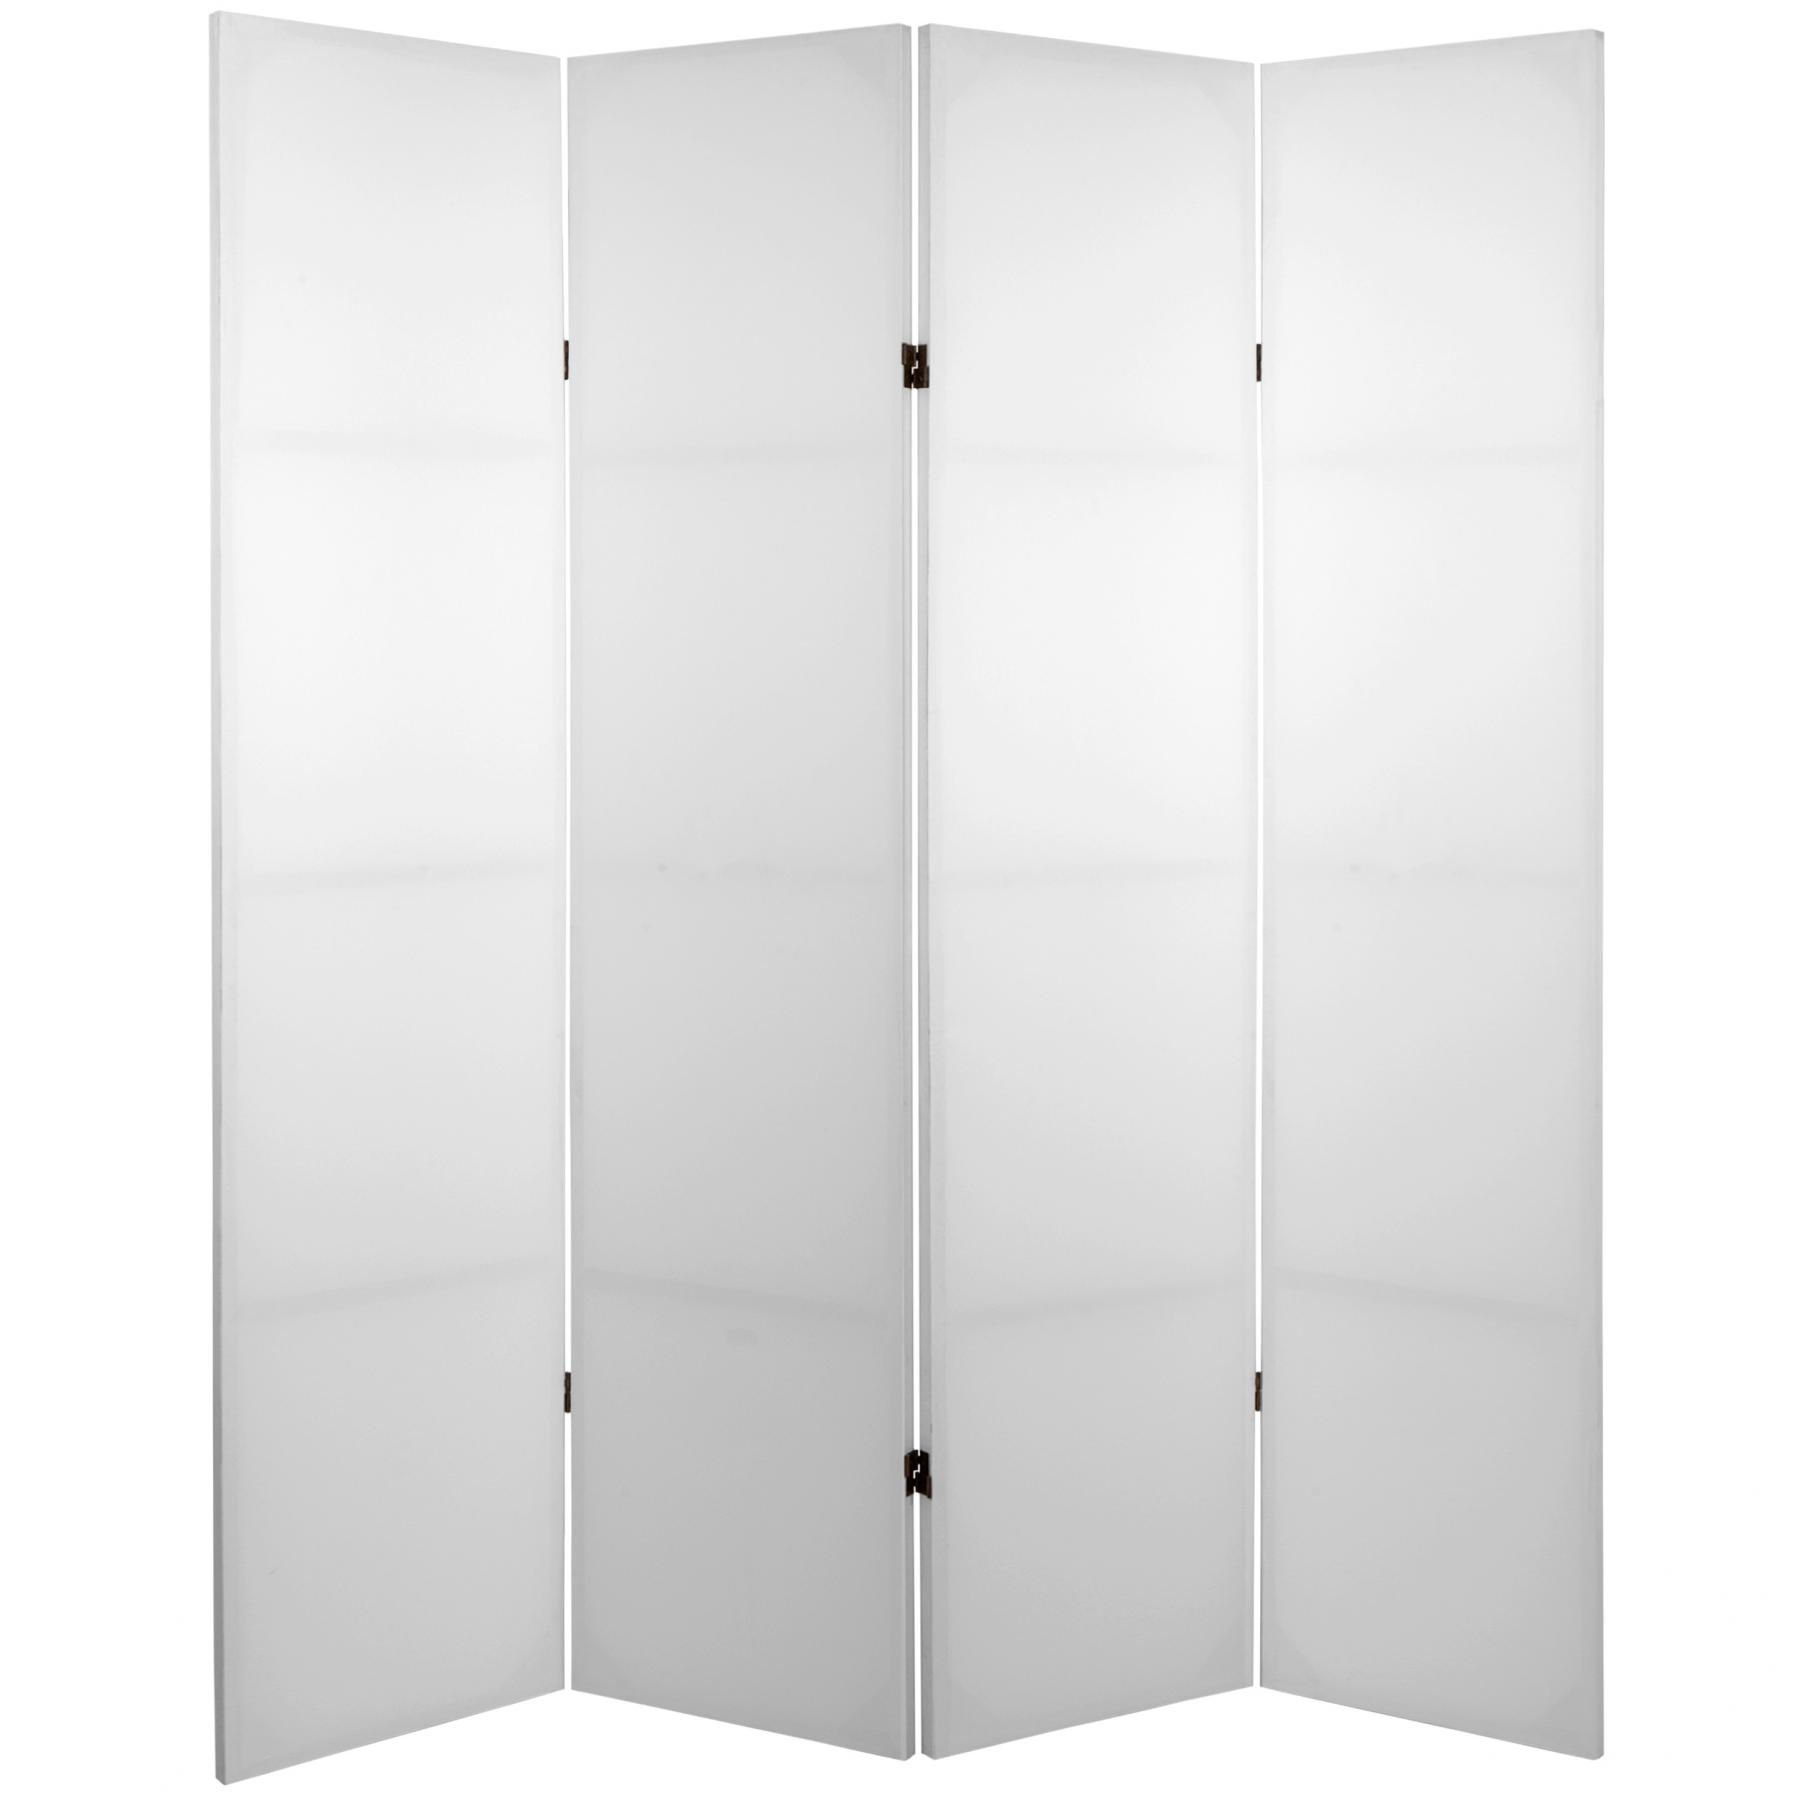 Room Divider Paravent 4 Panel Blank